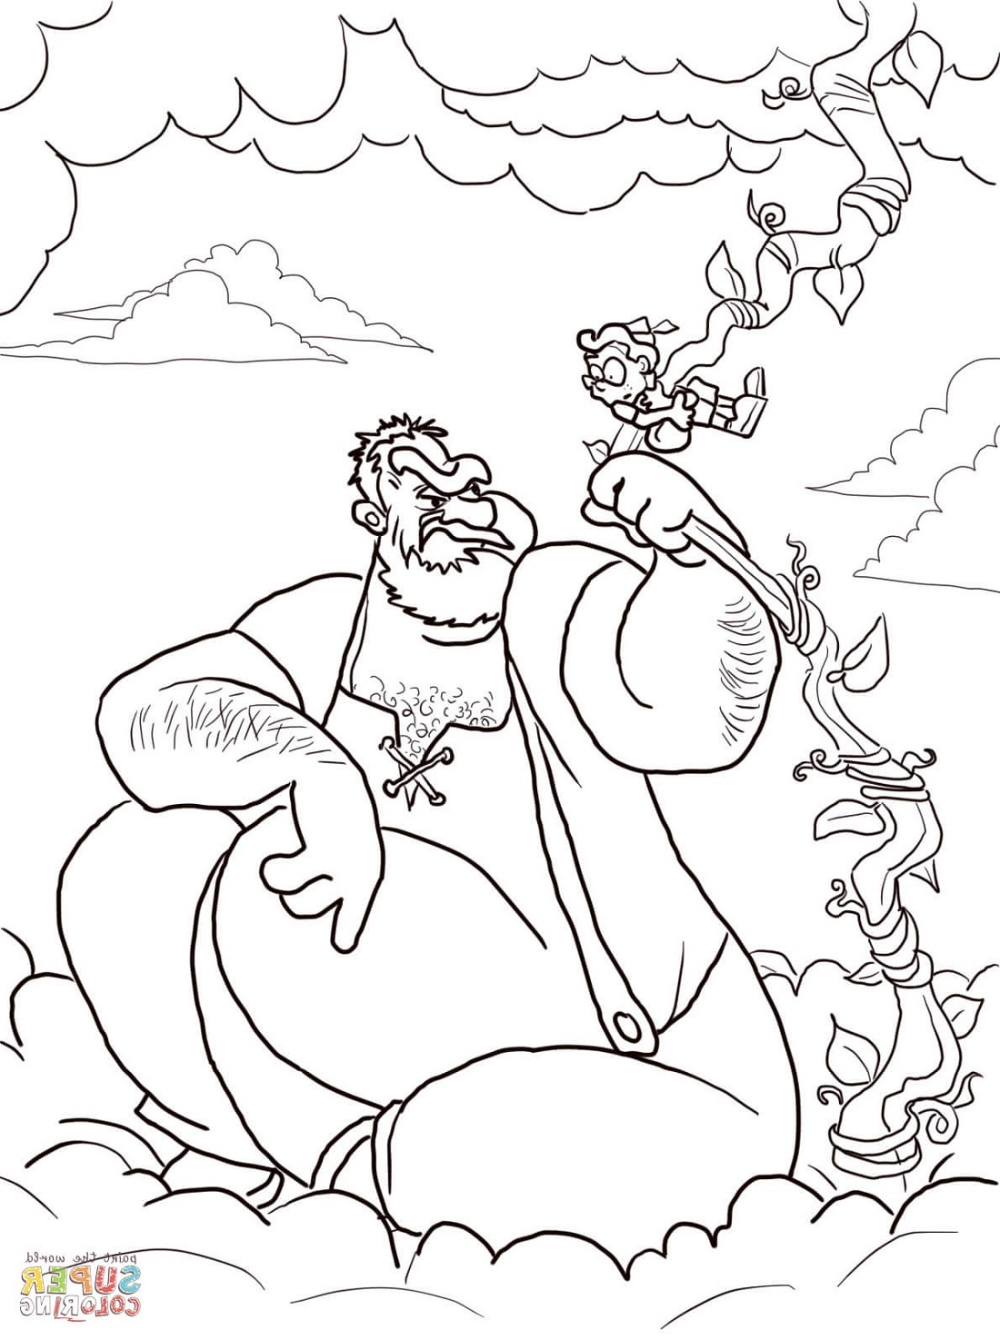 Jack And The Beanstalk Coloring Activities Coloring Pages Coloring Books Jack And The Beanstalk